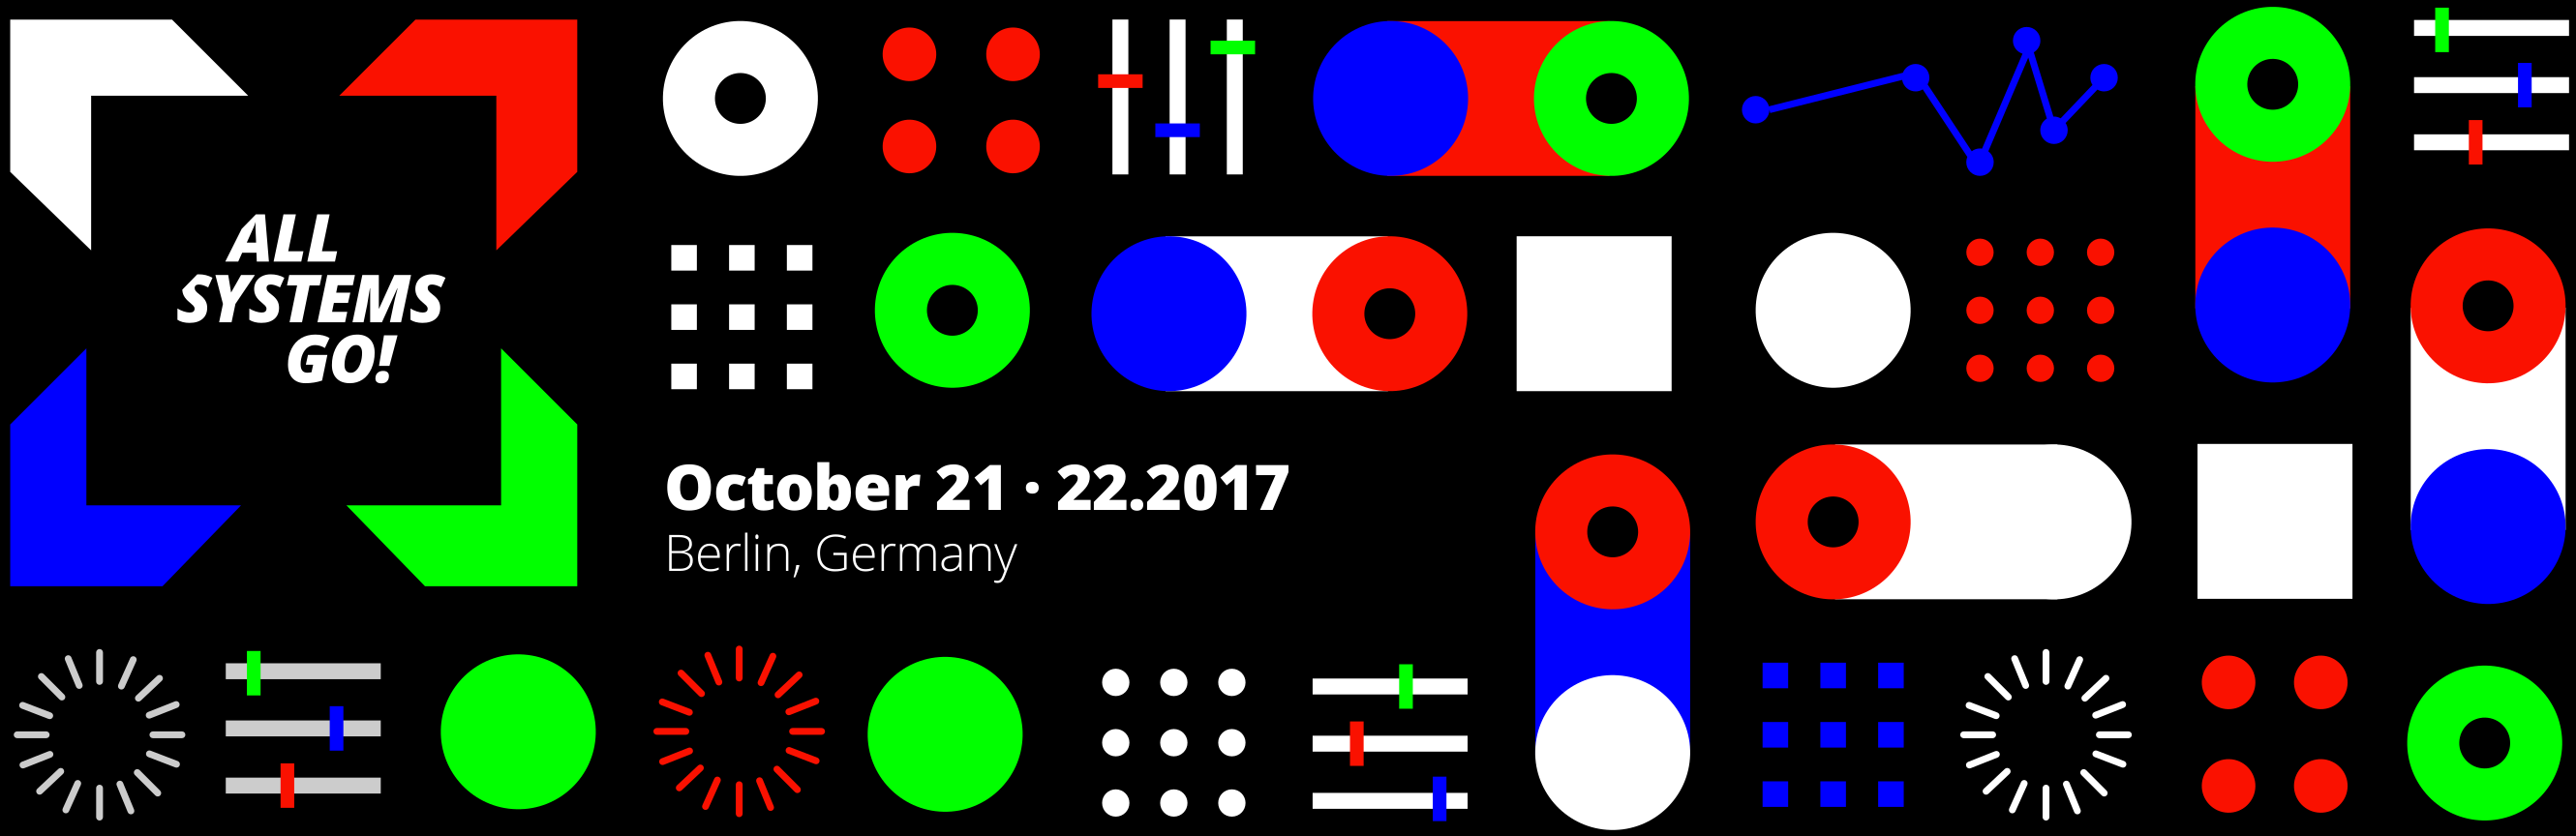 all-systems-go-berlin-2017